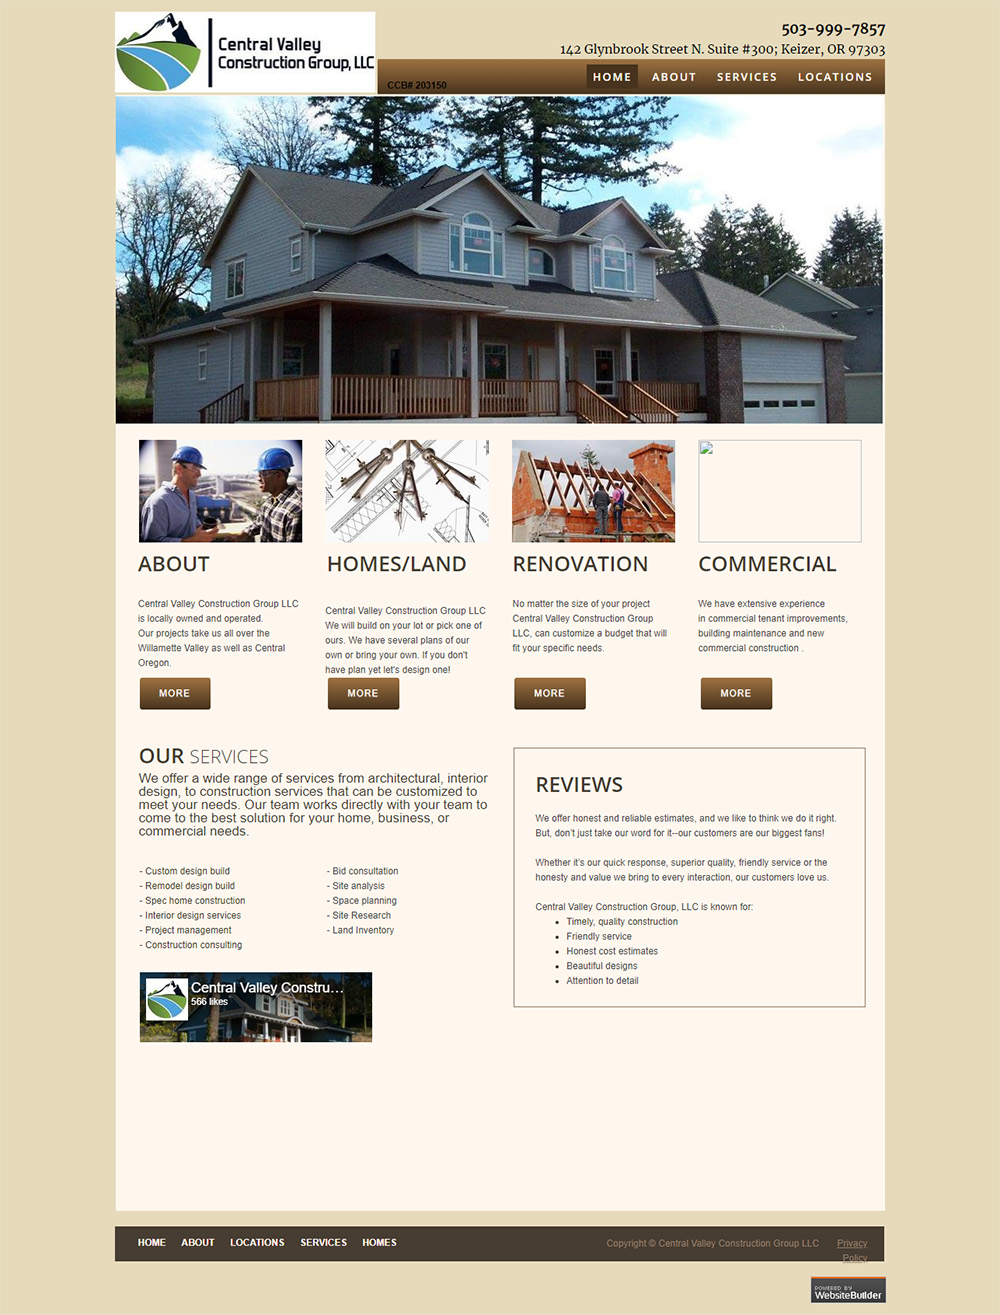 Central Valley Construction Group Home page Before redesign